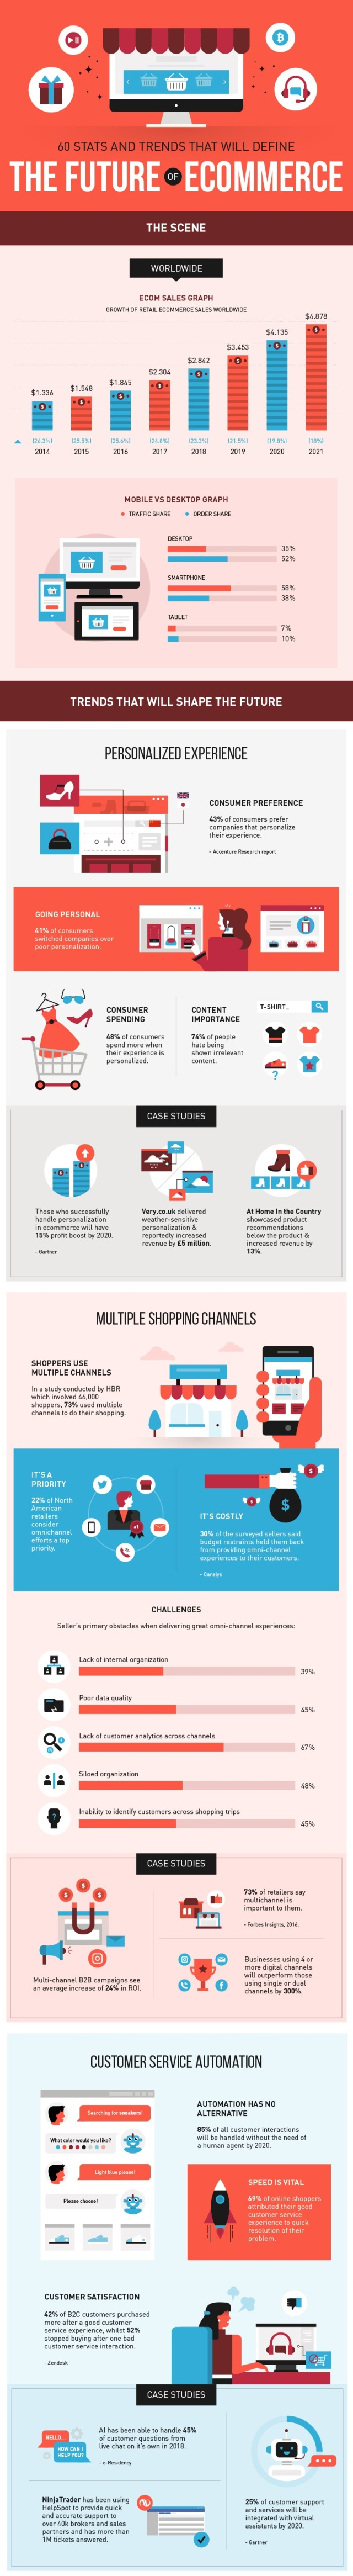 ecommerce_trends_info1